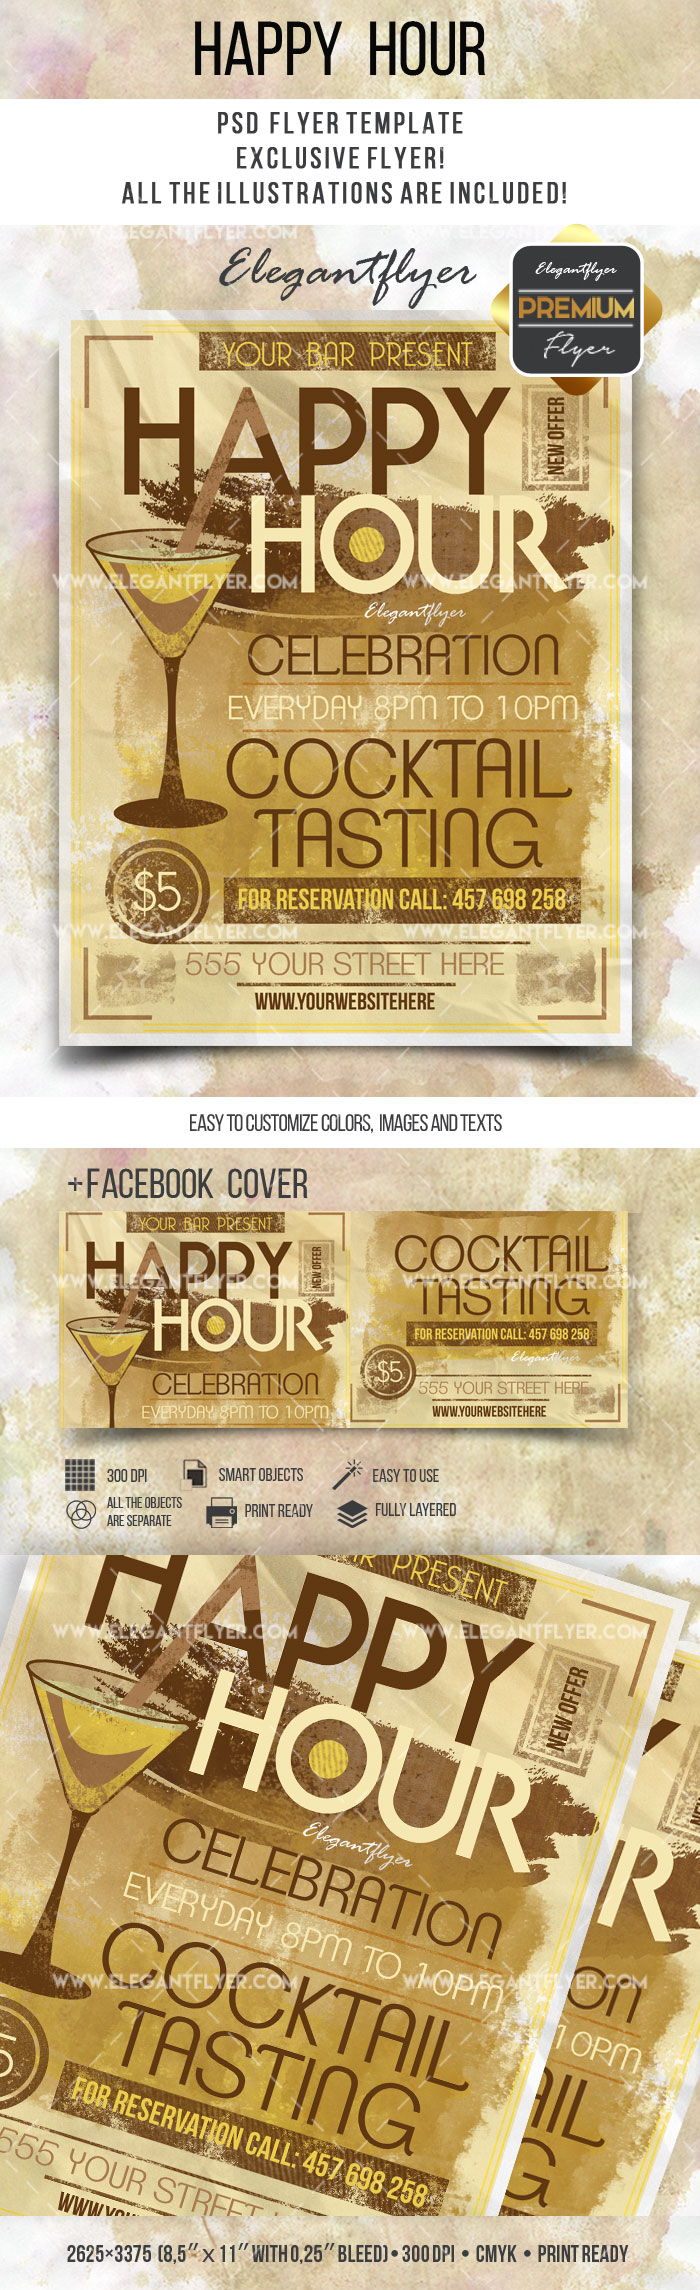 Flyer Template for Happy Hour Cocktails